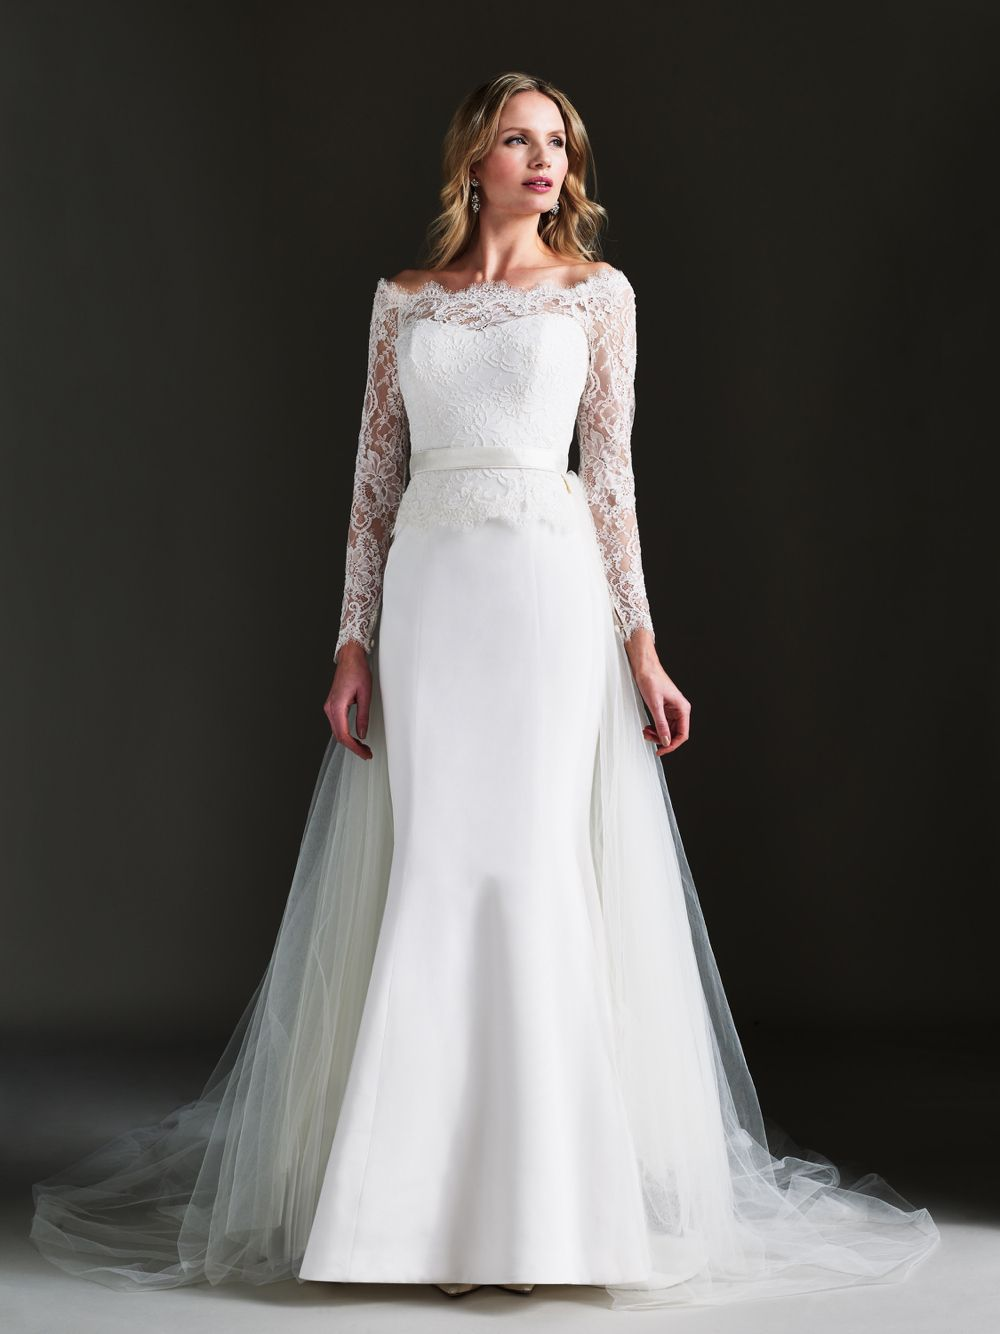 January Wedding Gown With The Kylie Train And Malaysia Shrug